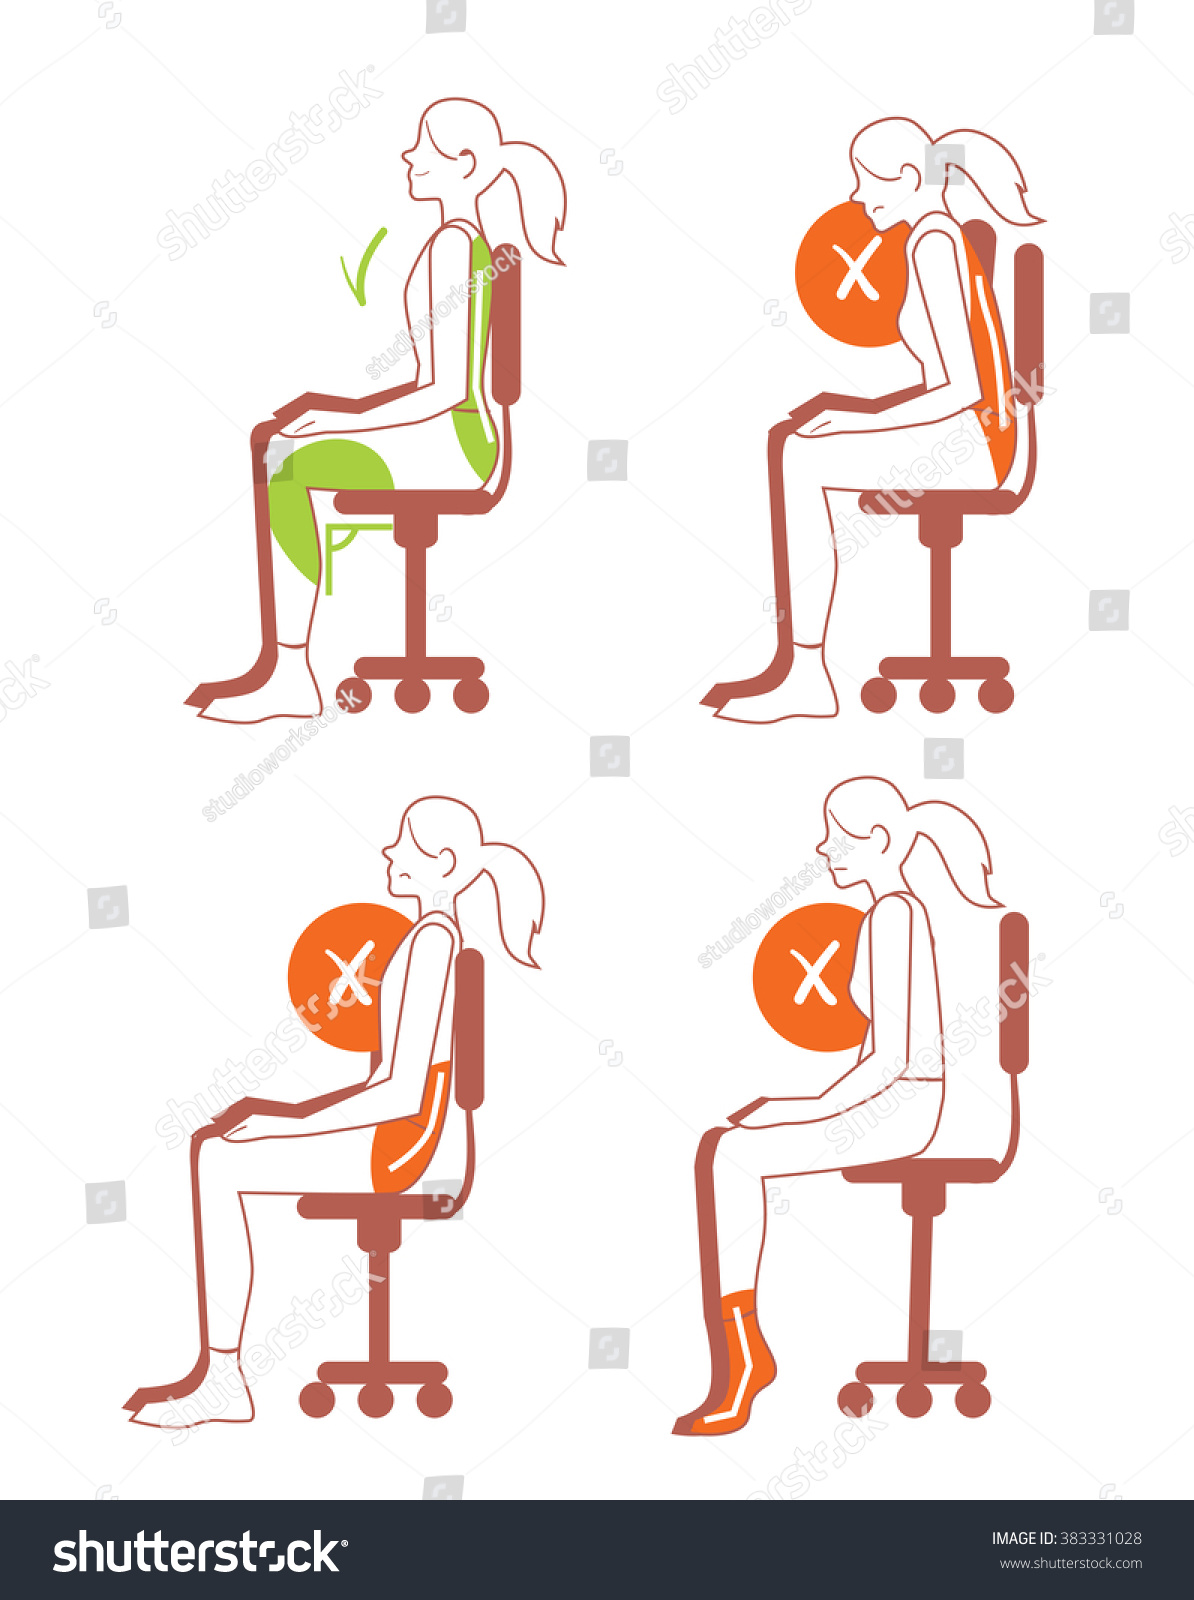 Correct Sitting Position Bad Sitting Position Stock Vector. Standard Living Room Size In Metres. Living Room Escape Youtube. Living Room Wall Beds. Best Flooring For Living Room And Dining Room. Colorful Living Room Escape Detonado. Cream Carpet Living Room Ideas. Traditional English Living Room Design. Modern Gray Paint Living Room